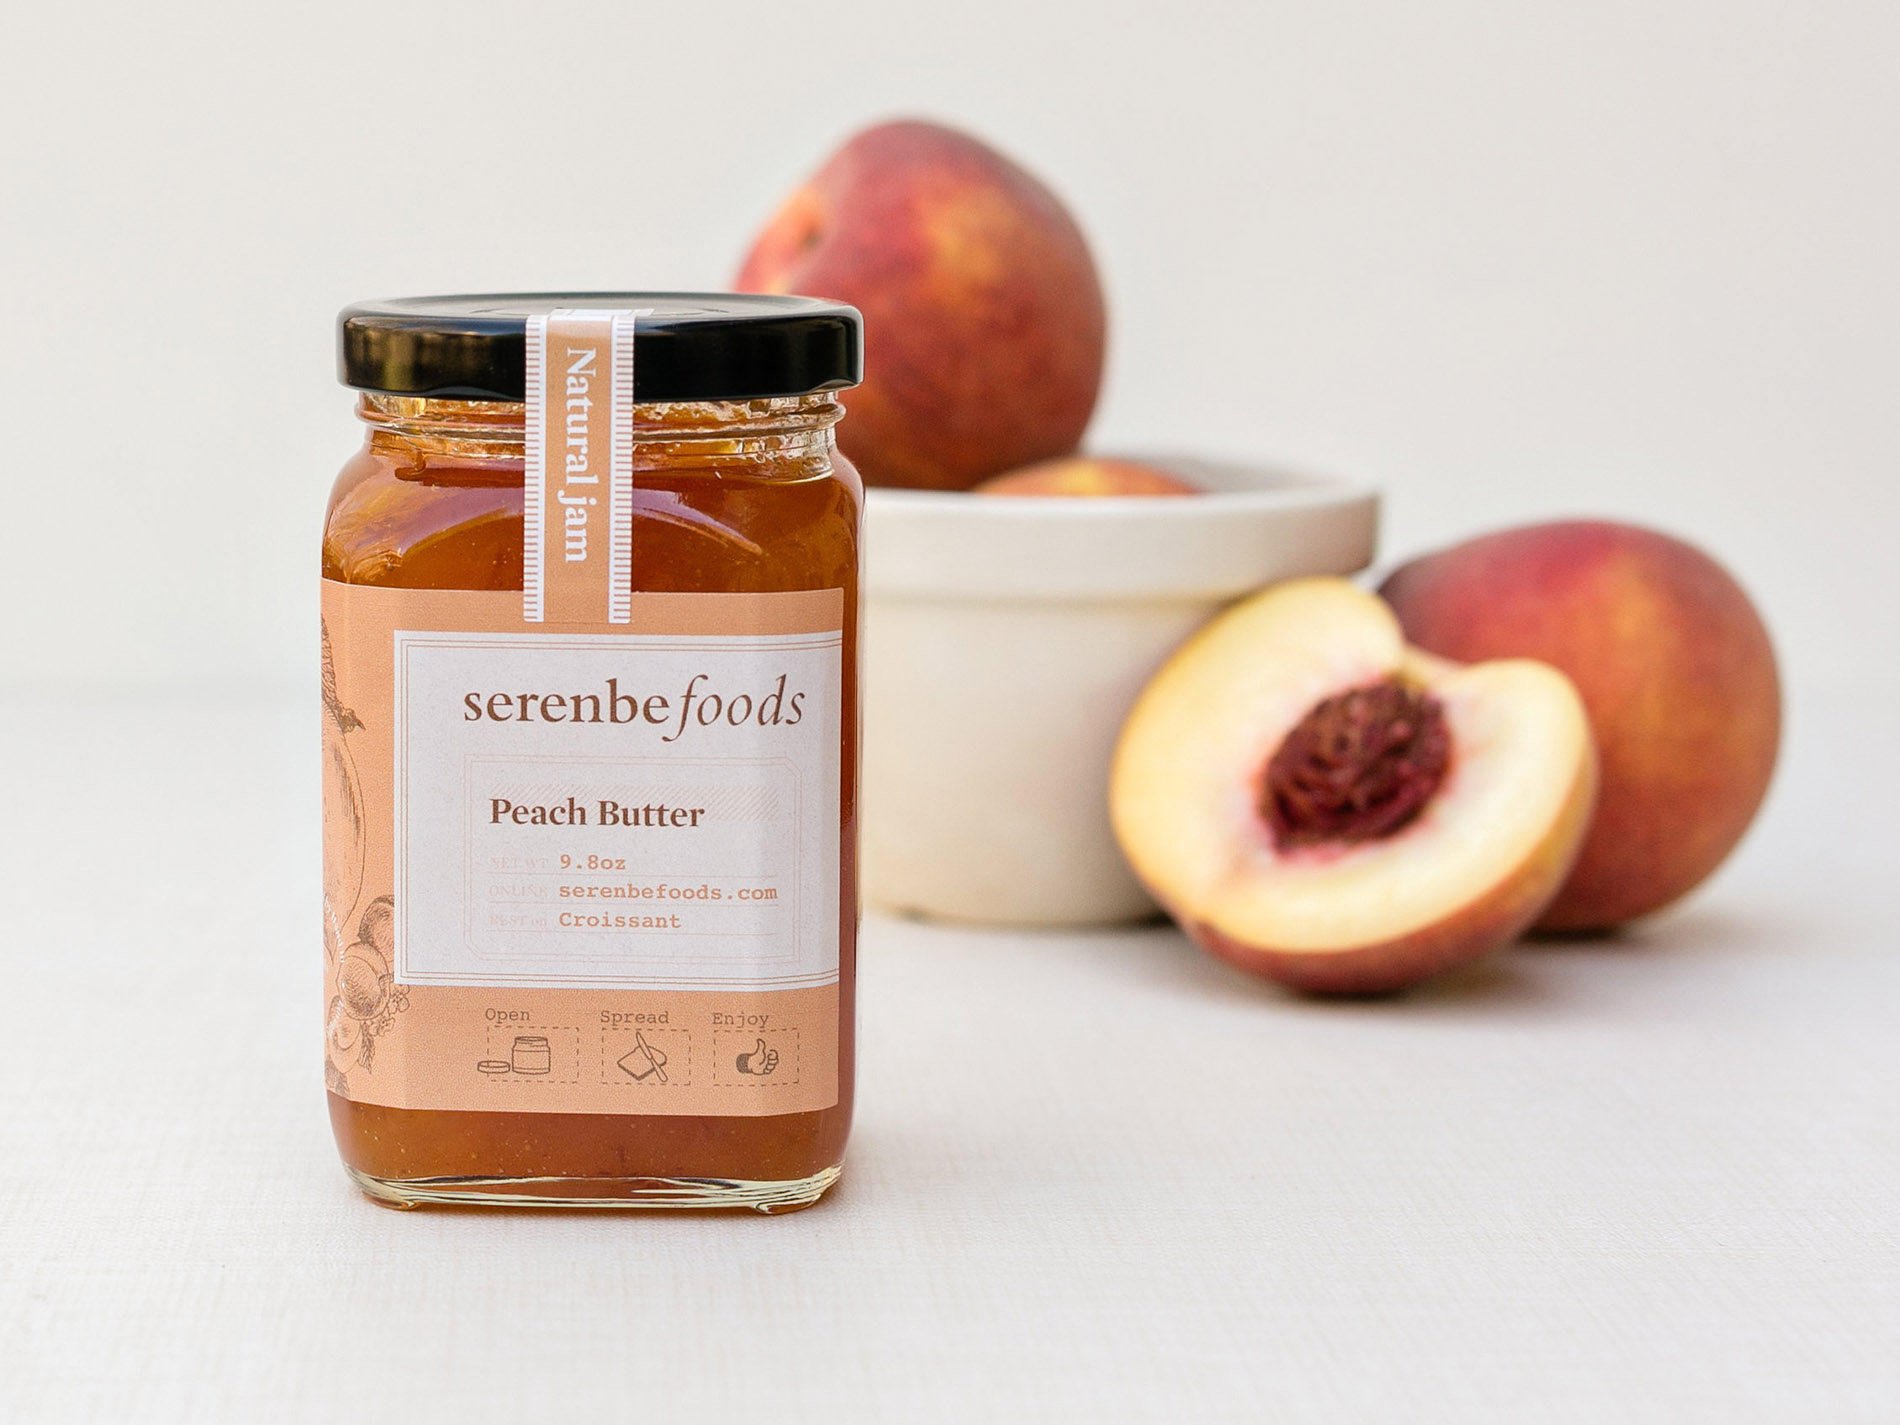 A bowl of peaches sit behind a jar of Serenbe Foods all natural Peach Butter jam, showing the label and brand identity packaging design.